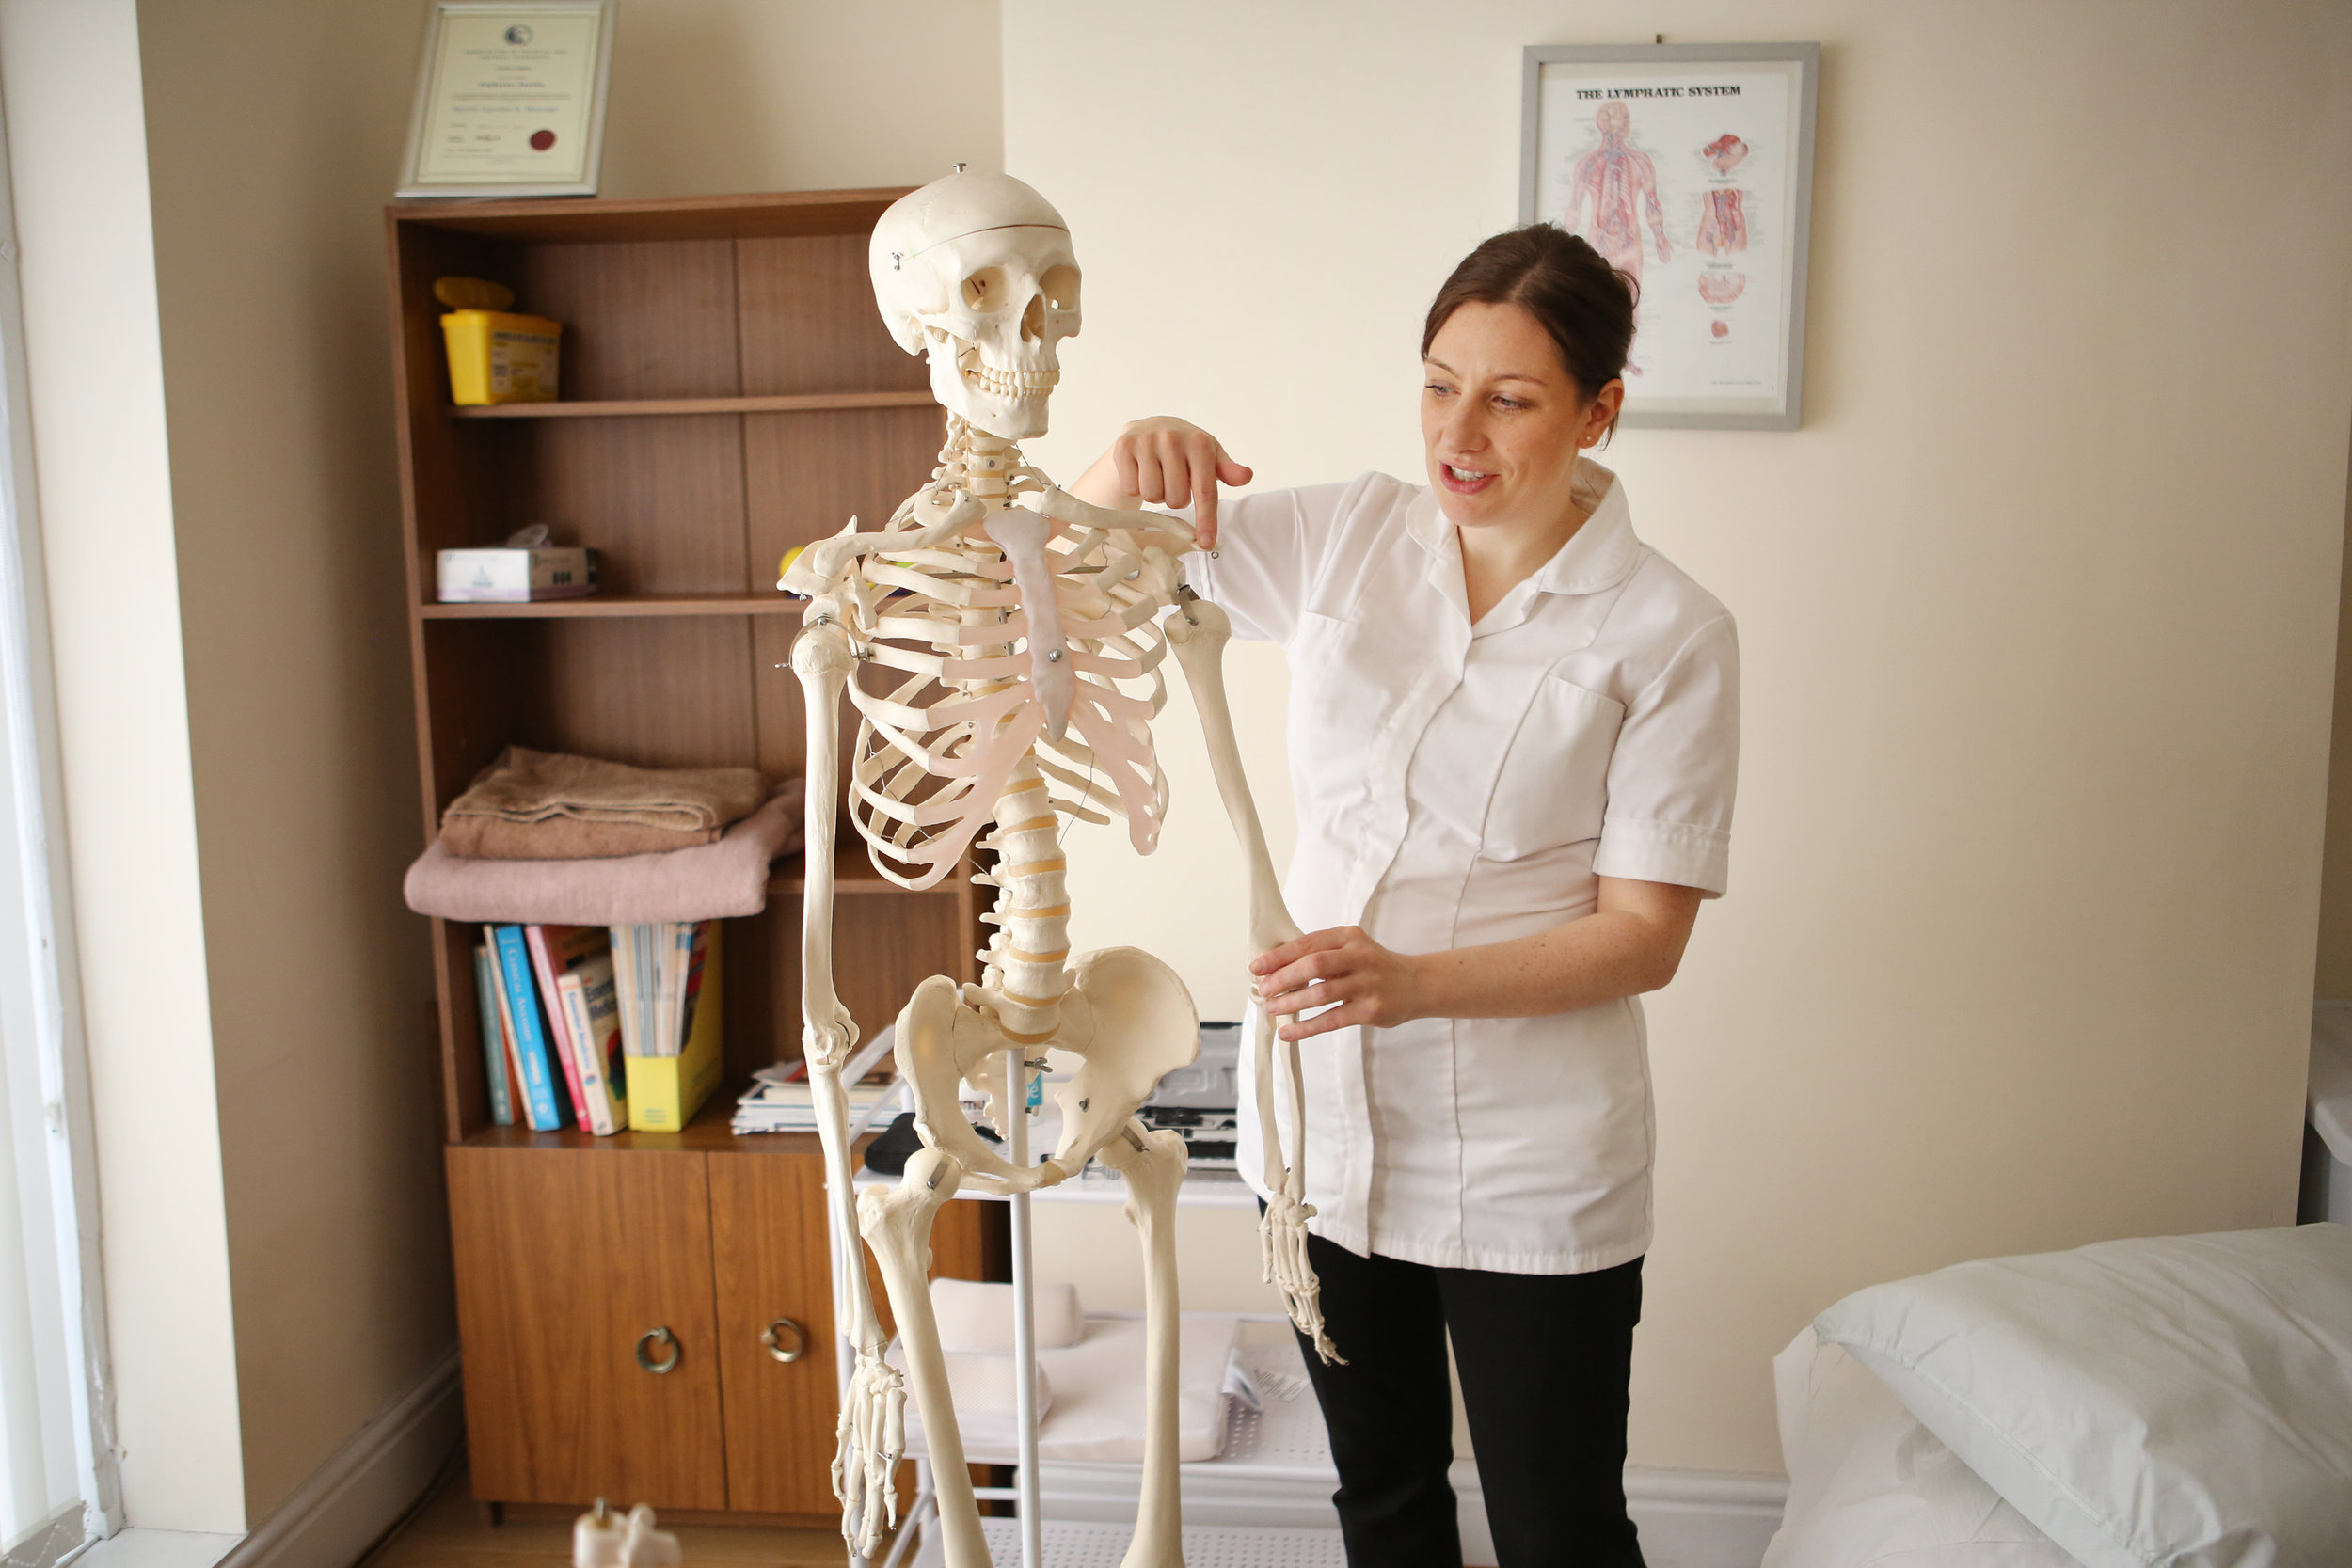 Allied Health Profession - Osteopathy is a physical therapy focused on establishing long term pain relief for patients.Osteopaths are medically trained to use hands-on techniques to assess, diagnose and treat musculoskeletal problems.Osteopathy is an Allied Health Profession which is autonomously governed by the General Osteopathic Council.